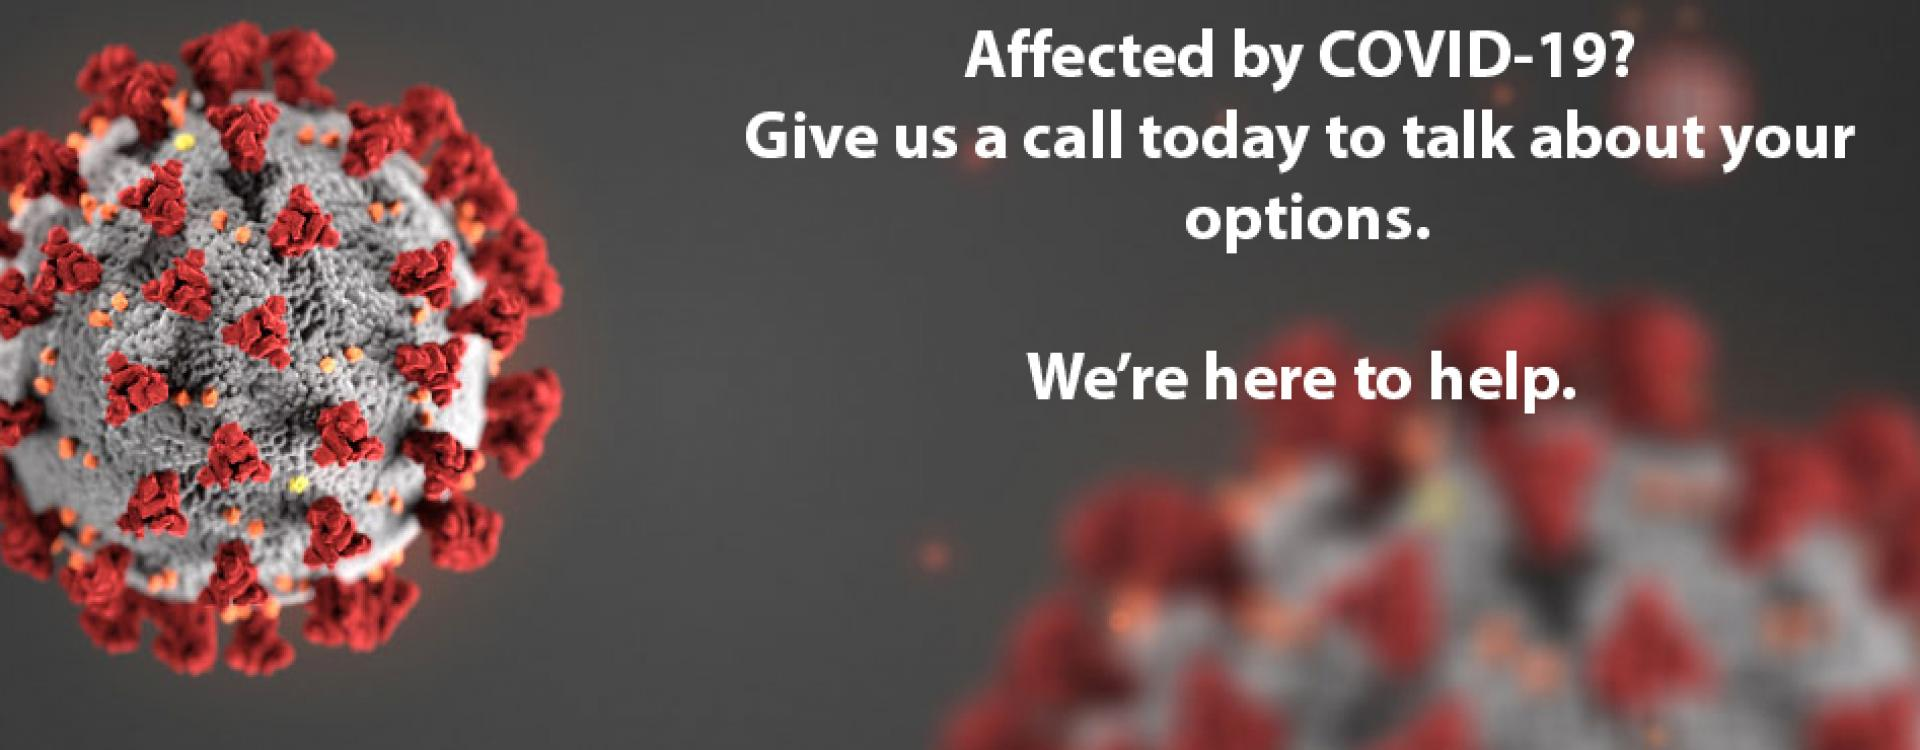 Affected by COVID-19? We're here to help.